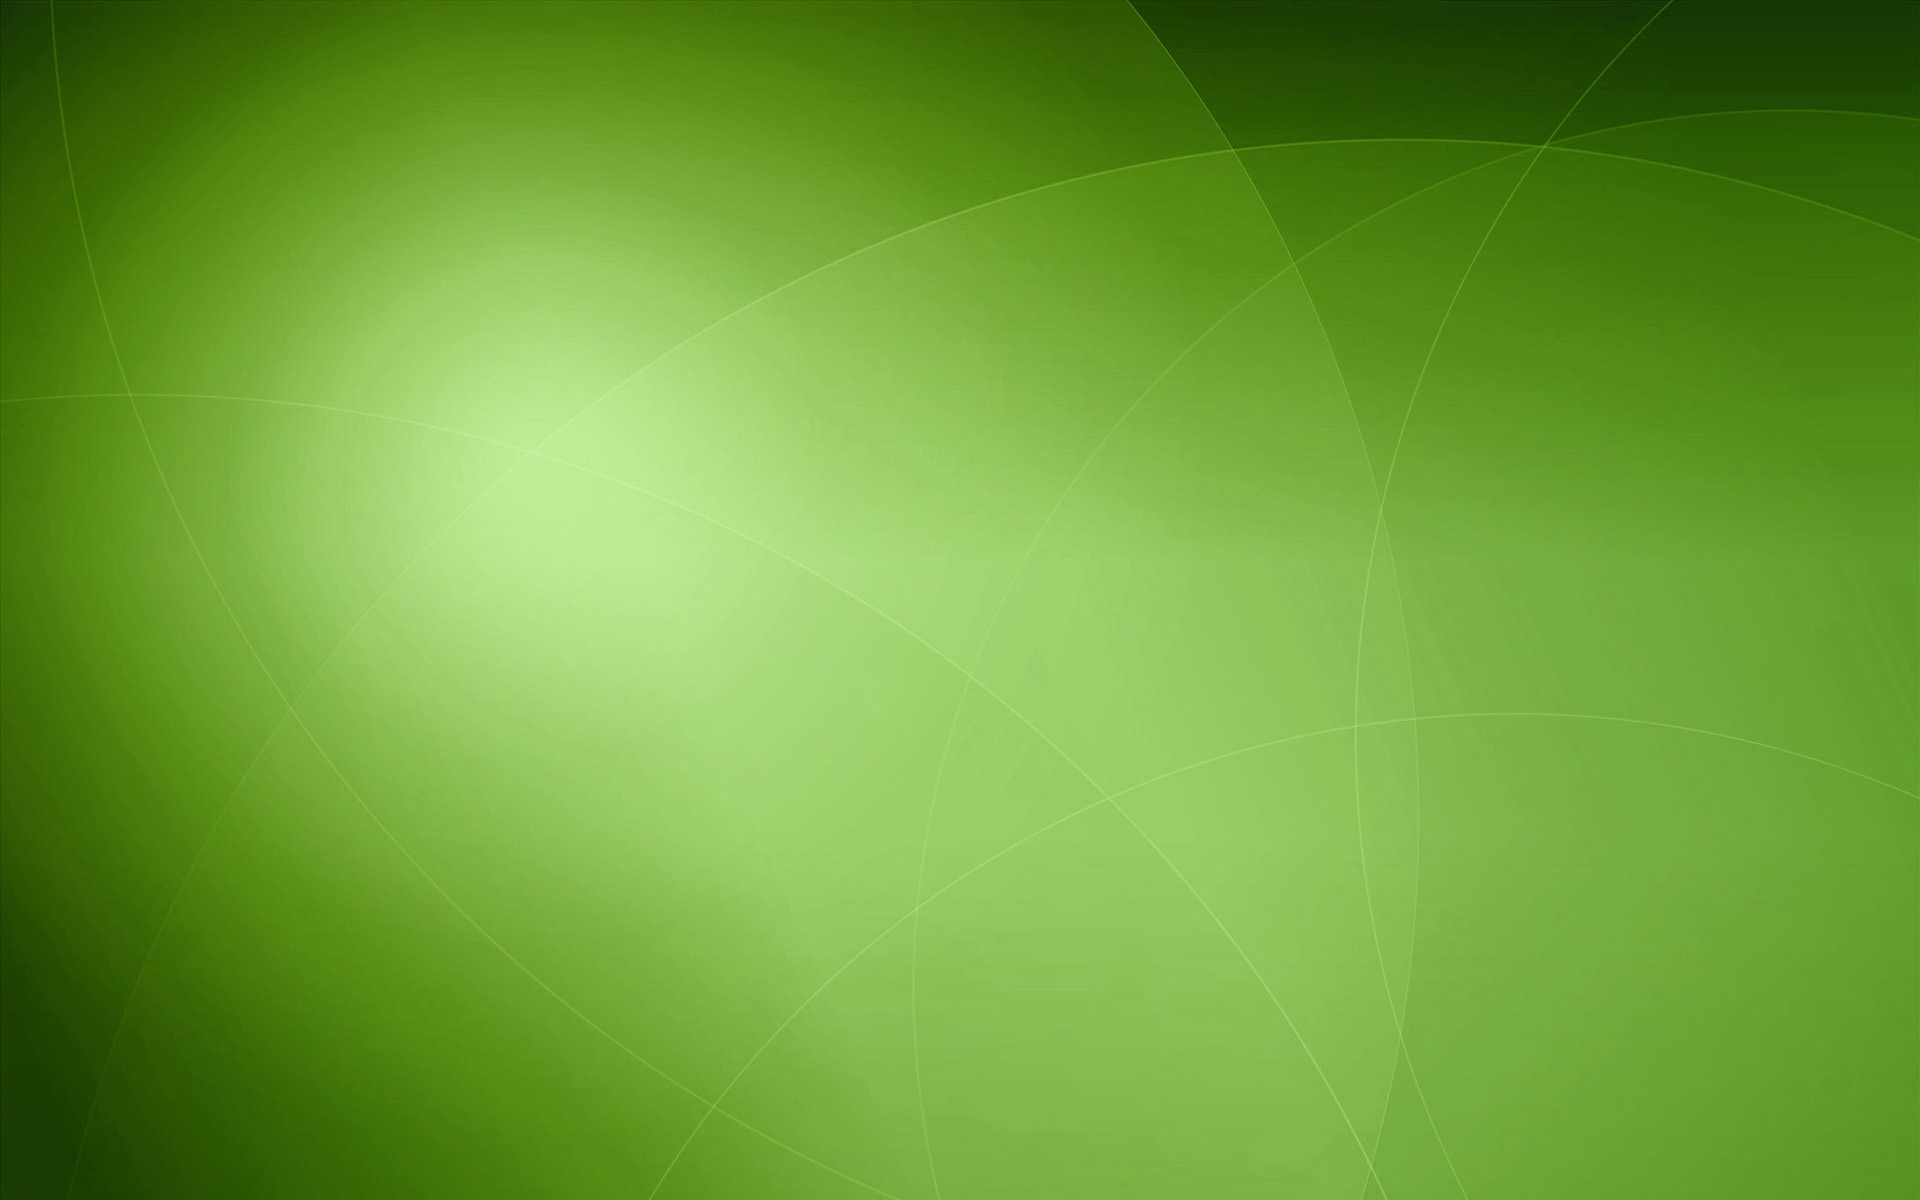 green-background-5